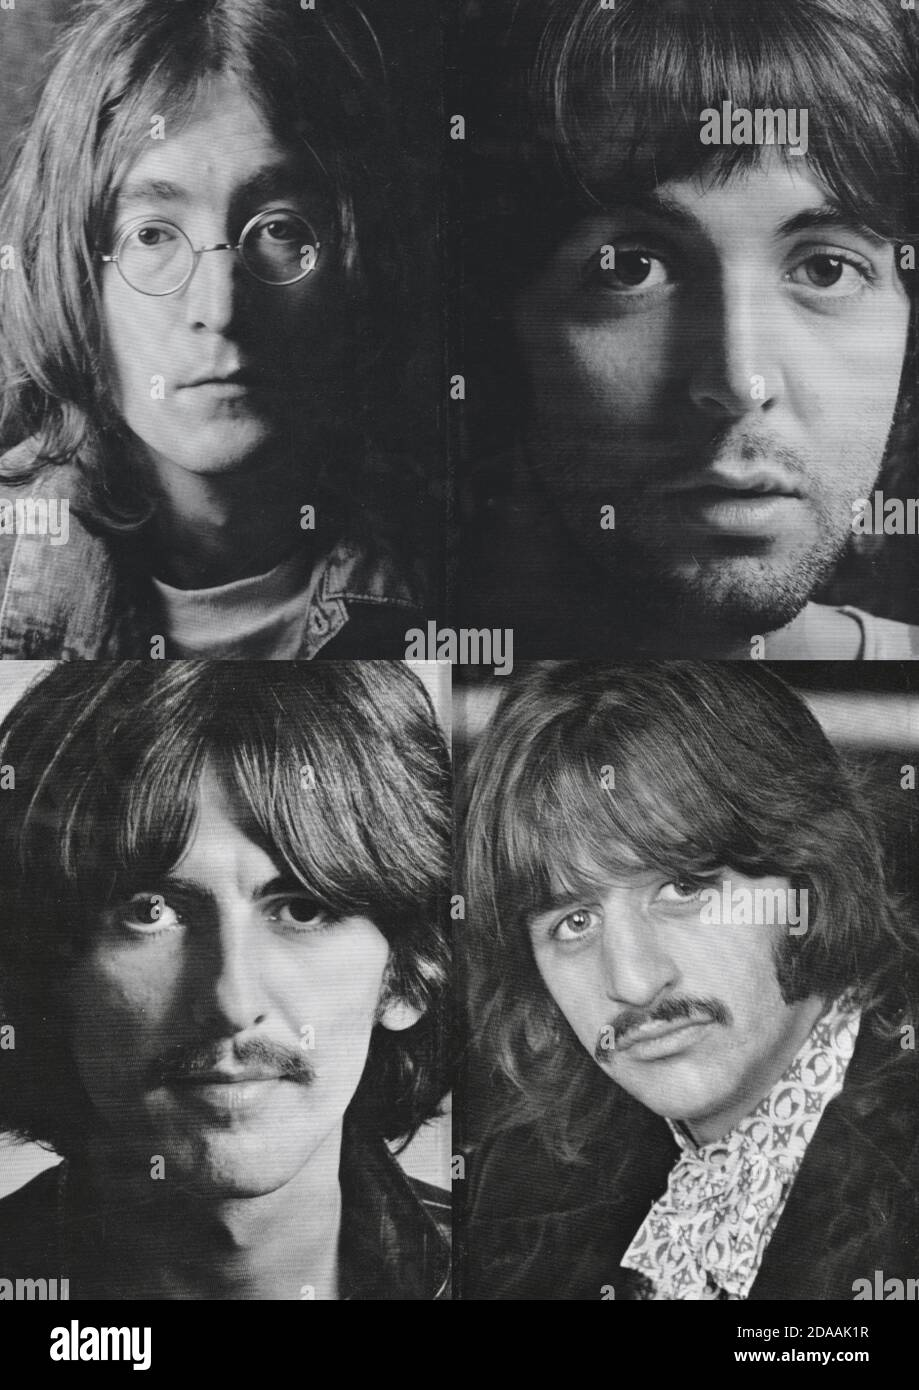 The Beatles Long Hair High Resolution Stock Photography And Images Alamy